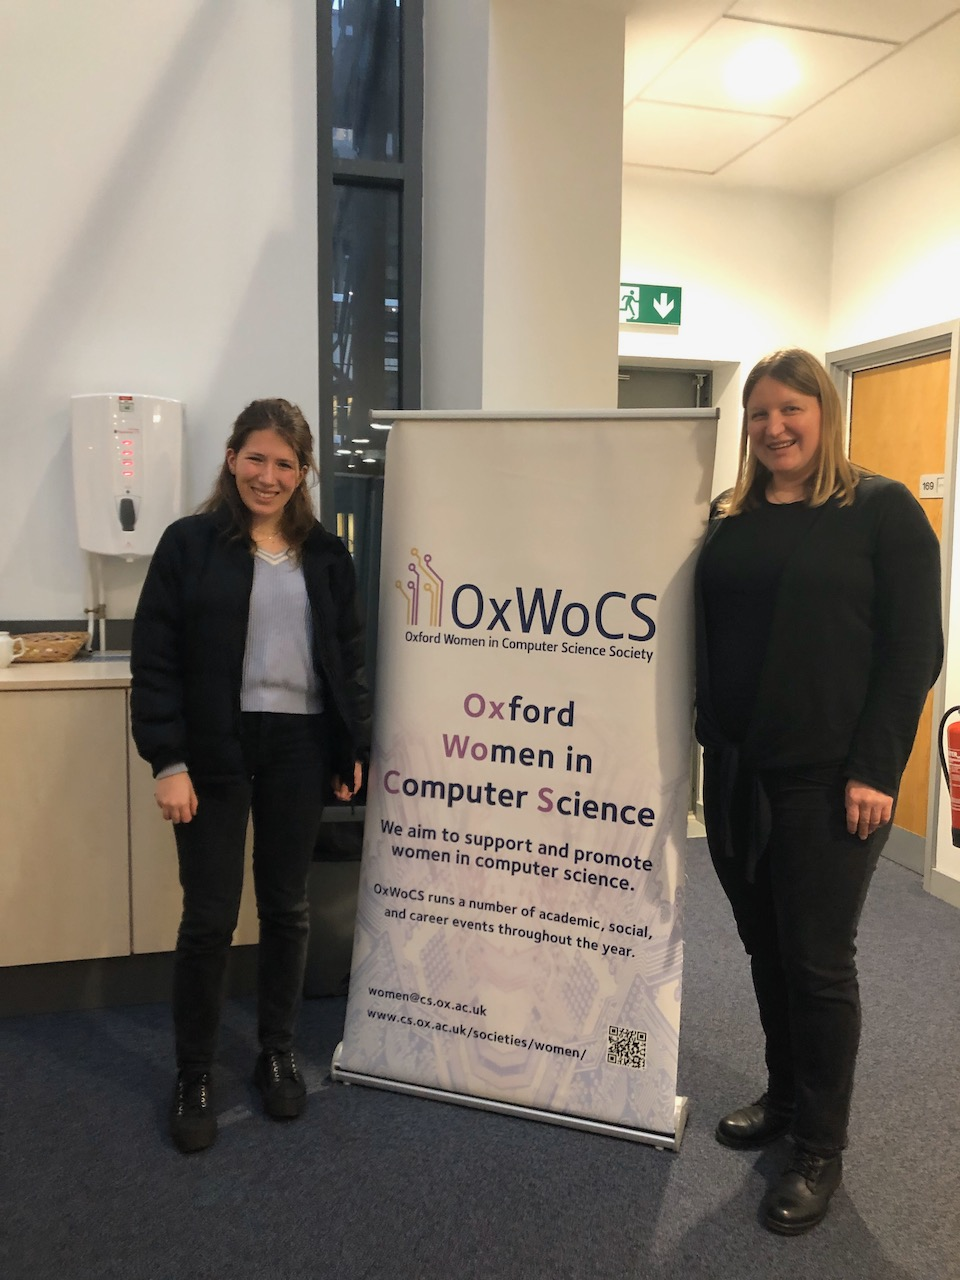 Jasmine Rienecker of OxWoCS, one of the Co-Organisers of the Distinguished Speakers Seminar Series, and Julia Neidhardt.